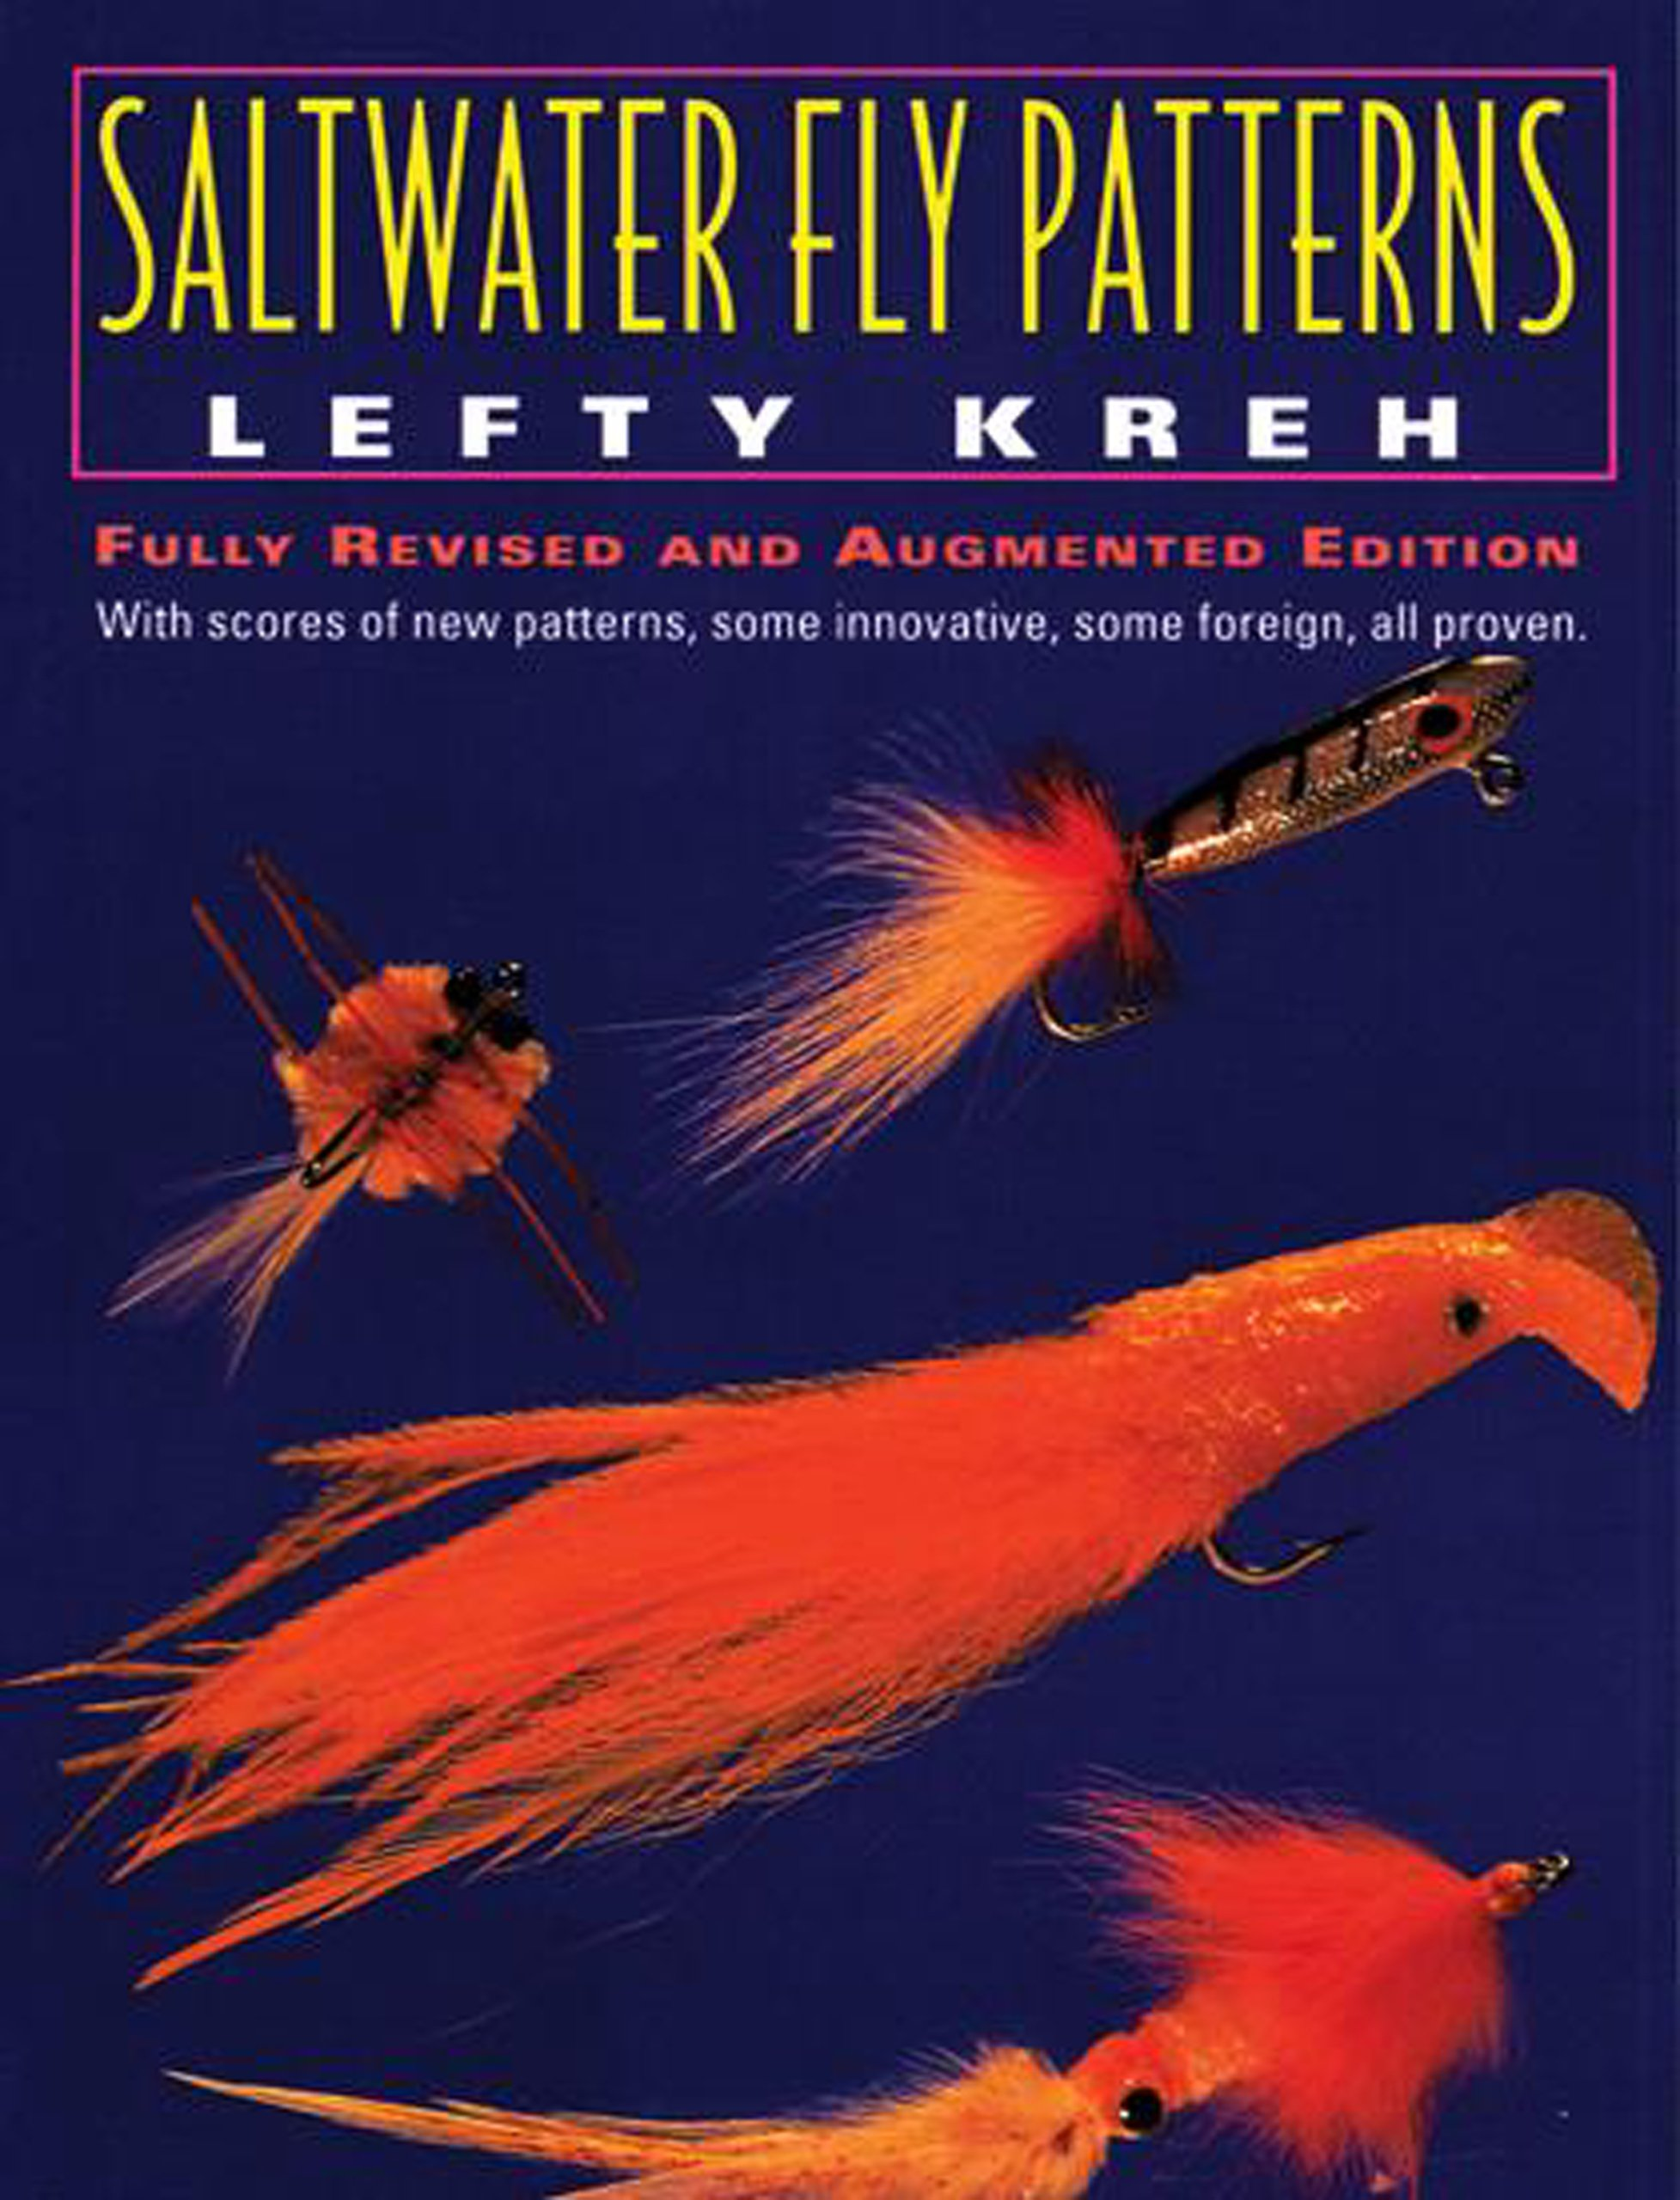 Saltwater Fly Tying Patterns Saltwater Fly Patterns